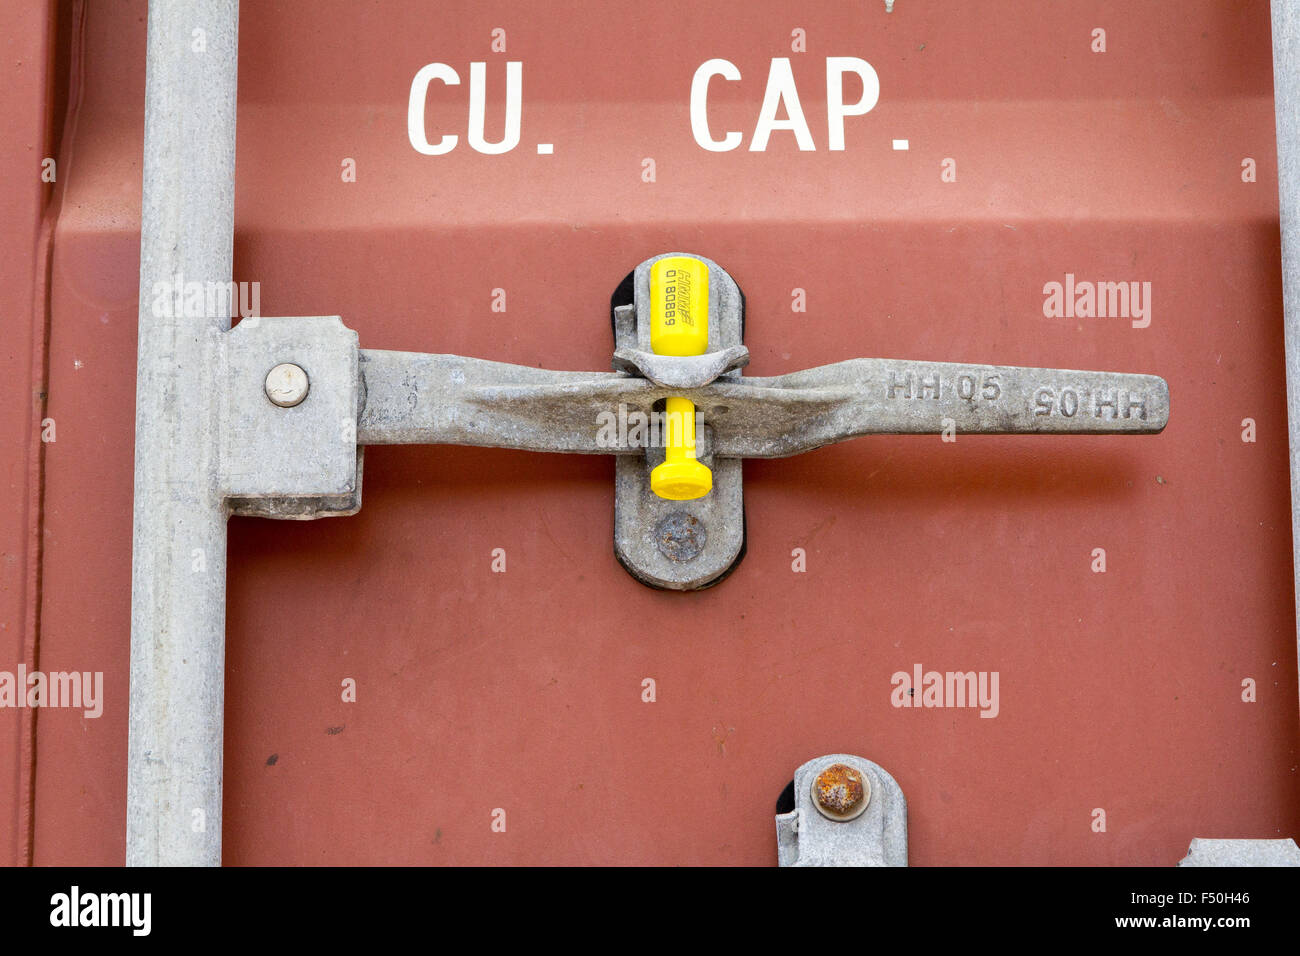 Shipping Container Locking Handle With A Uniquely Numbered